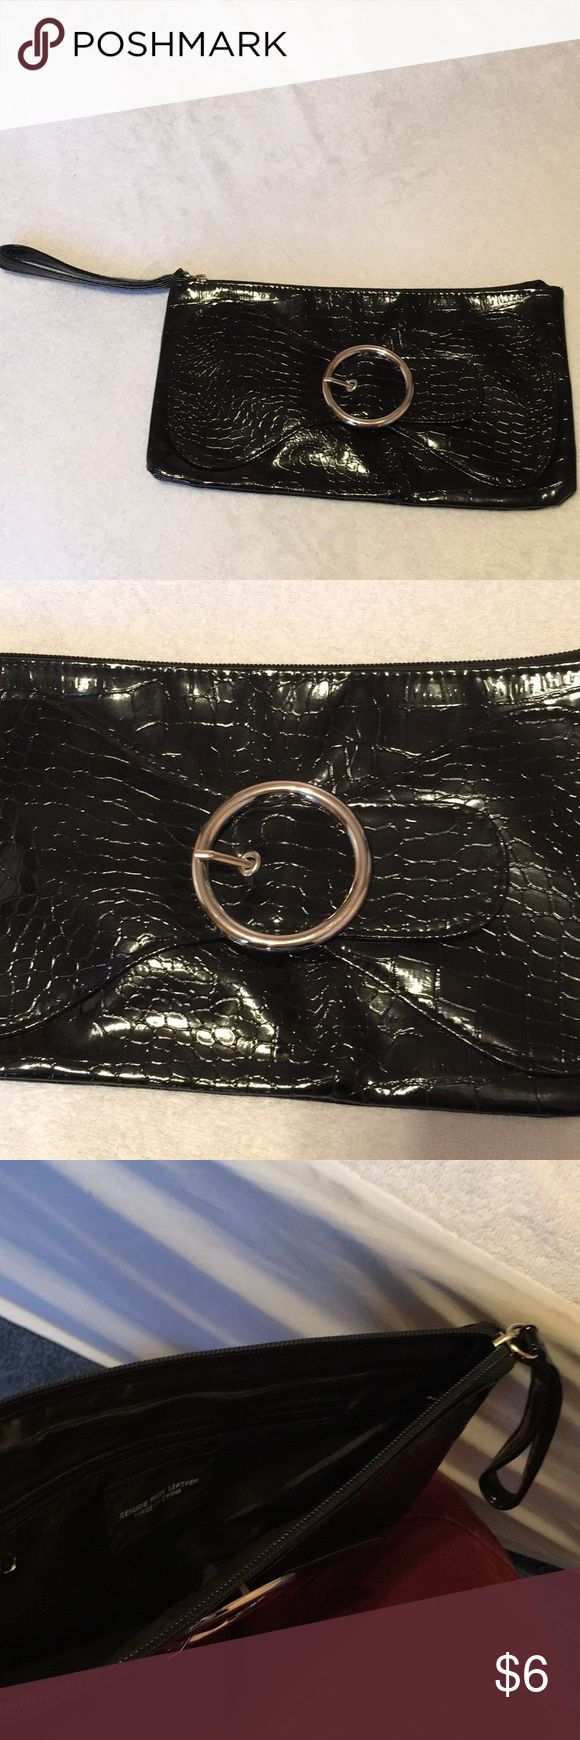 Black Faux Leather Clutch with Buckle Black Faux Leather Clutch with Buckle Bags Clutches & Wristlets